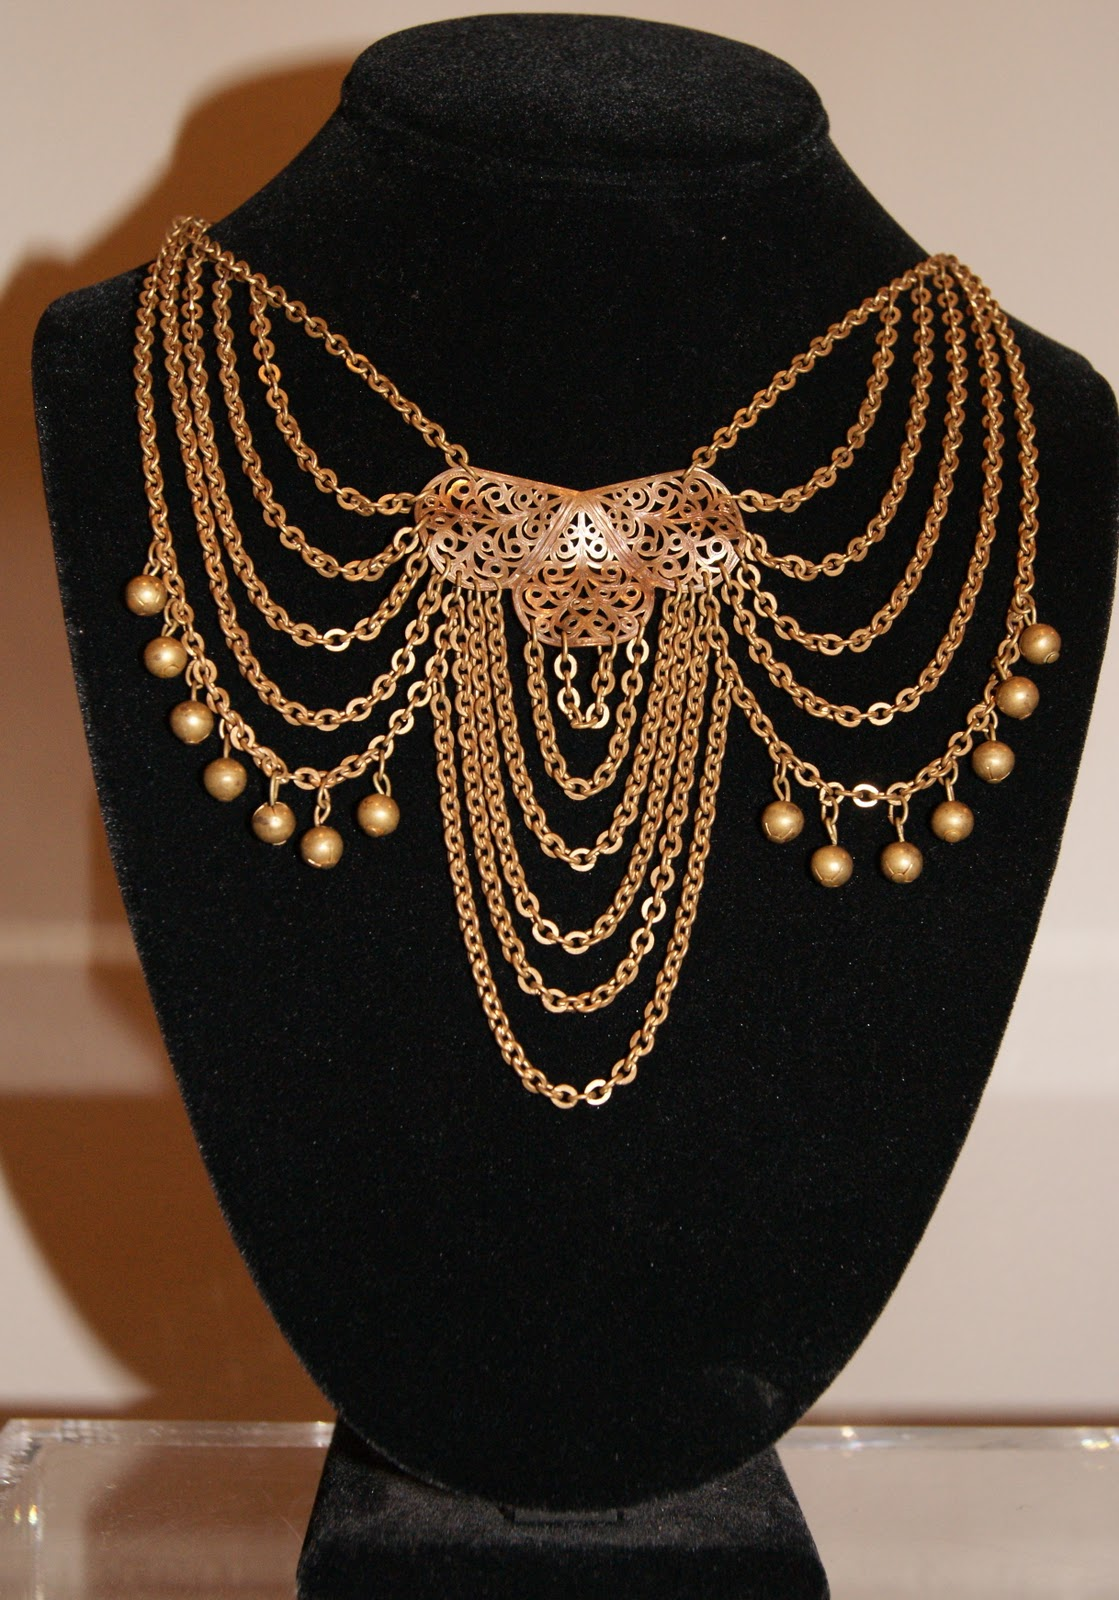 Early 1900's brass chain statement necklace.